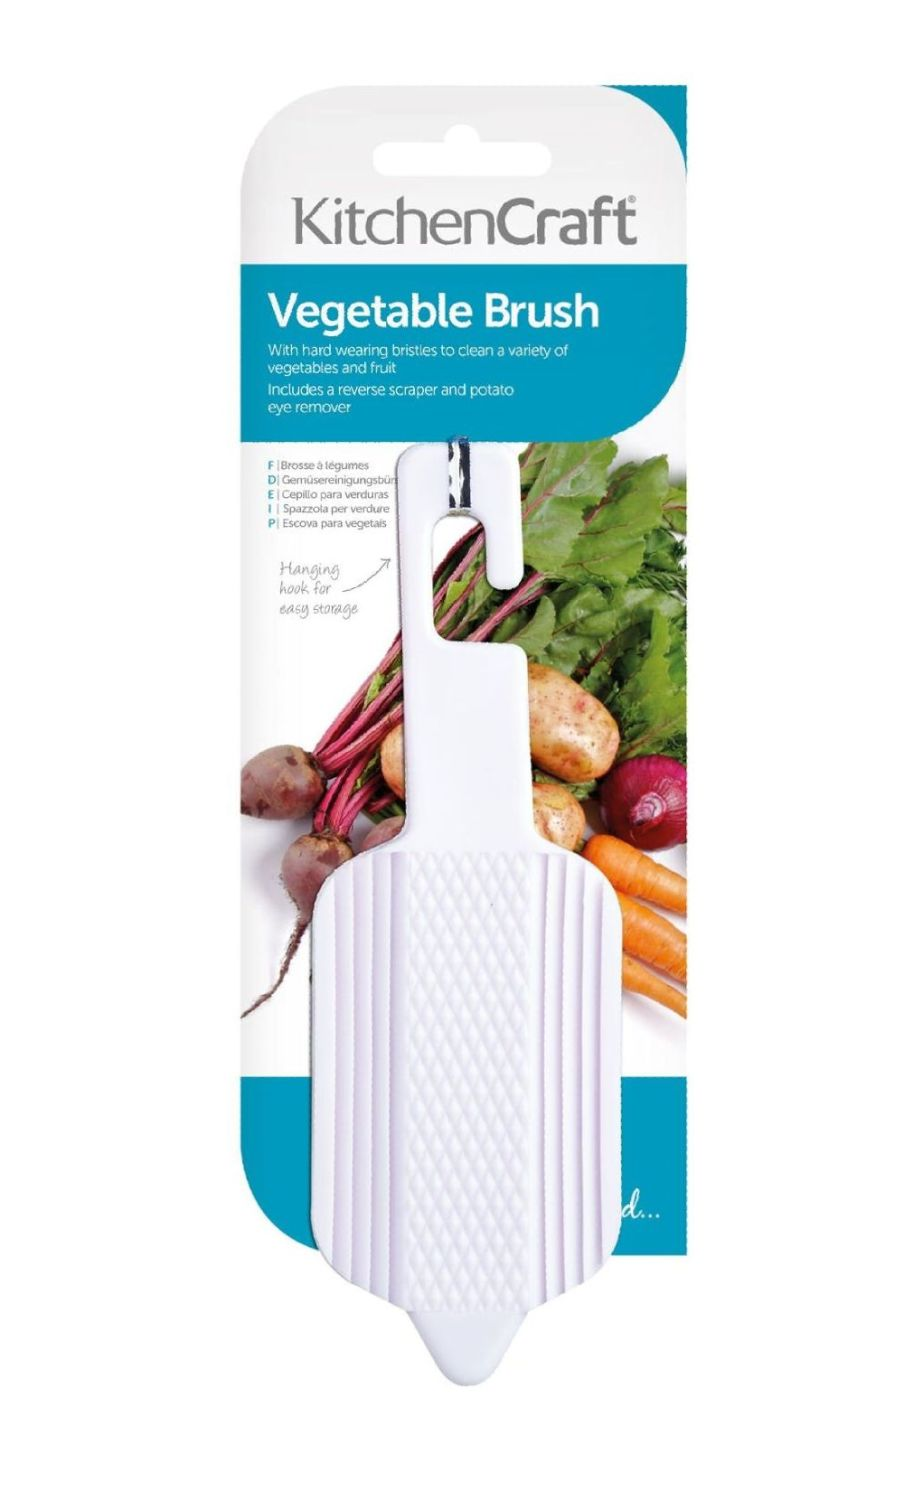 Vegetable Brush by Kitchen Craft